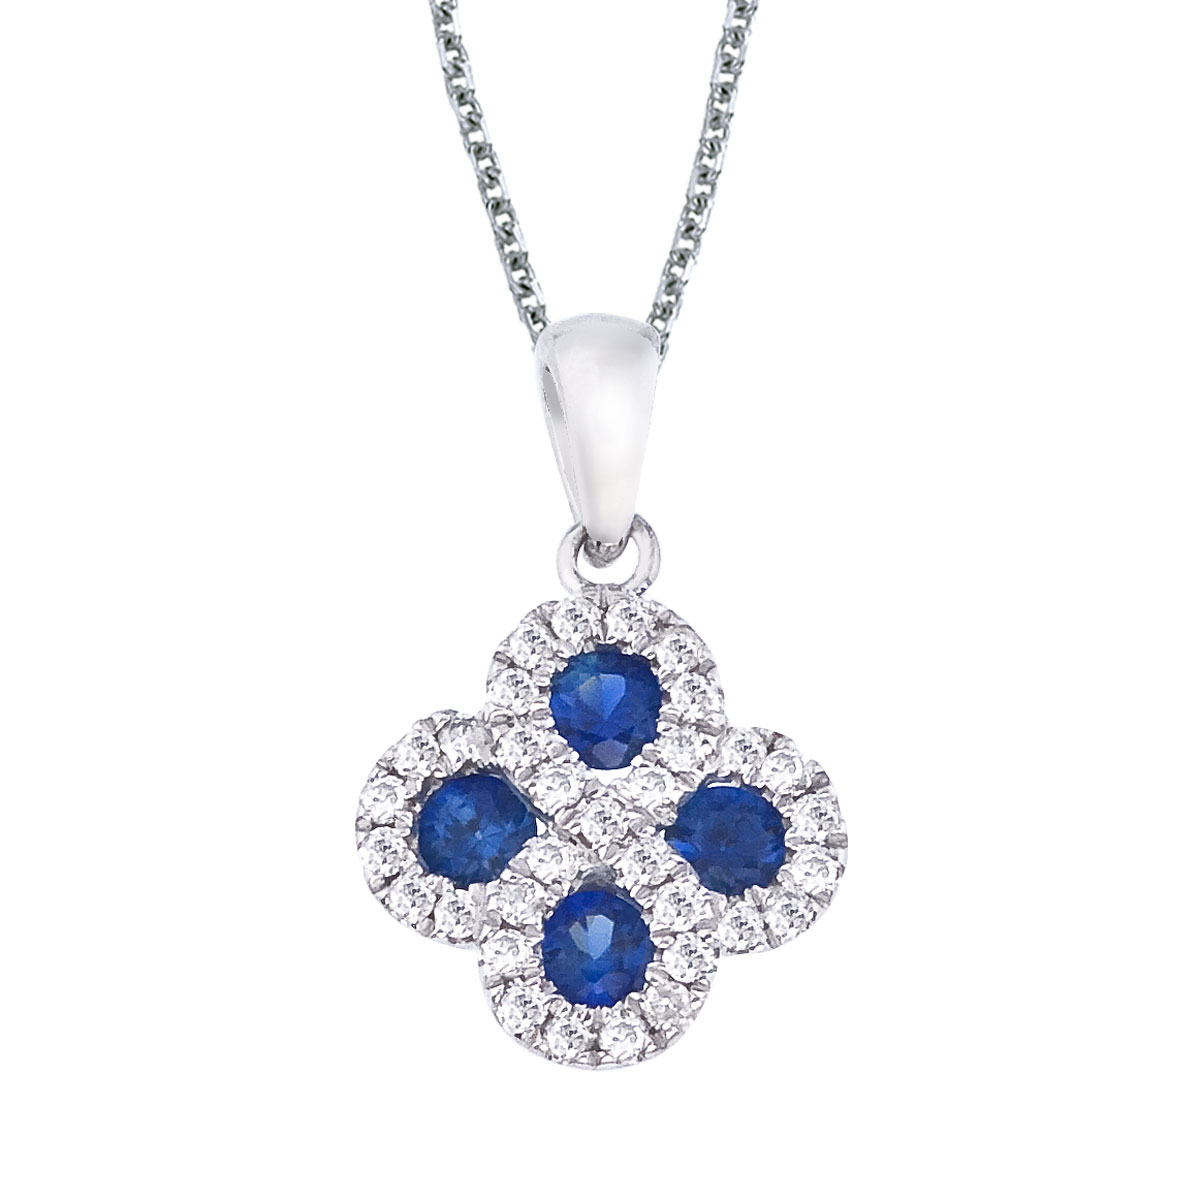 This 14k white gold clover shape pendant contains four 2.7 mm sapphires surrounded by .13 carats ...